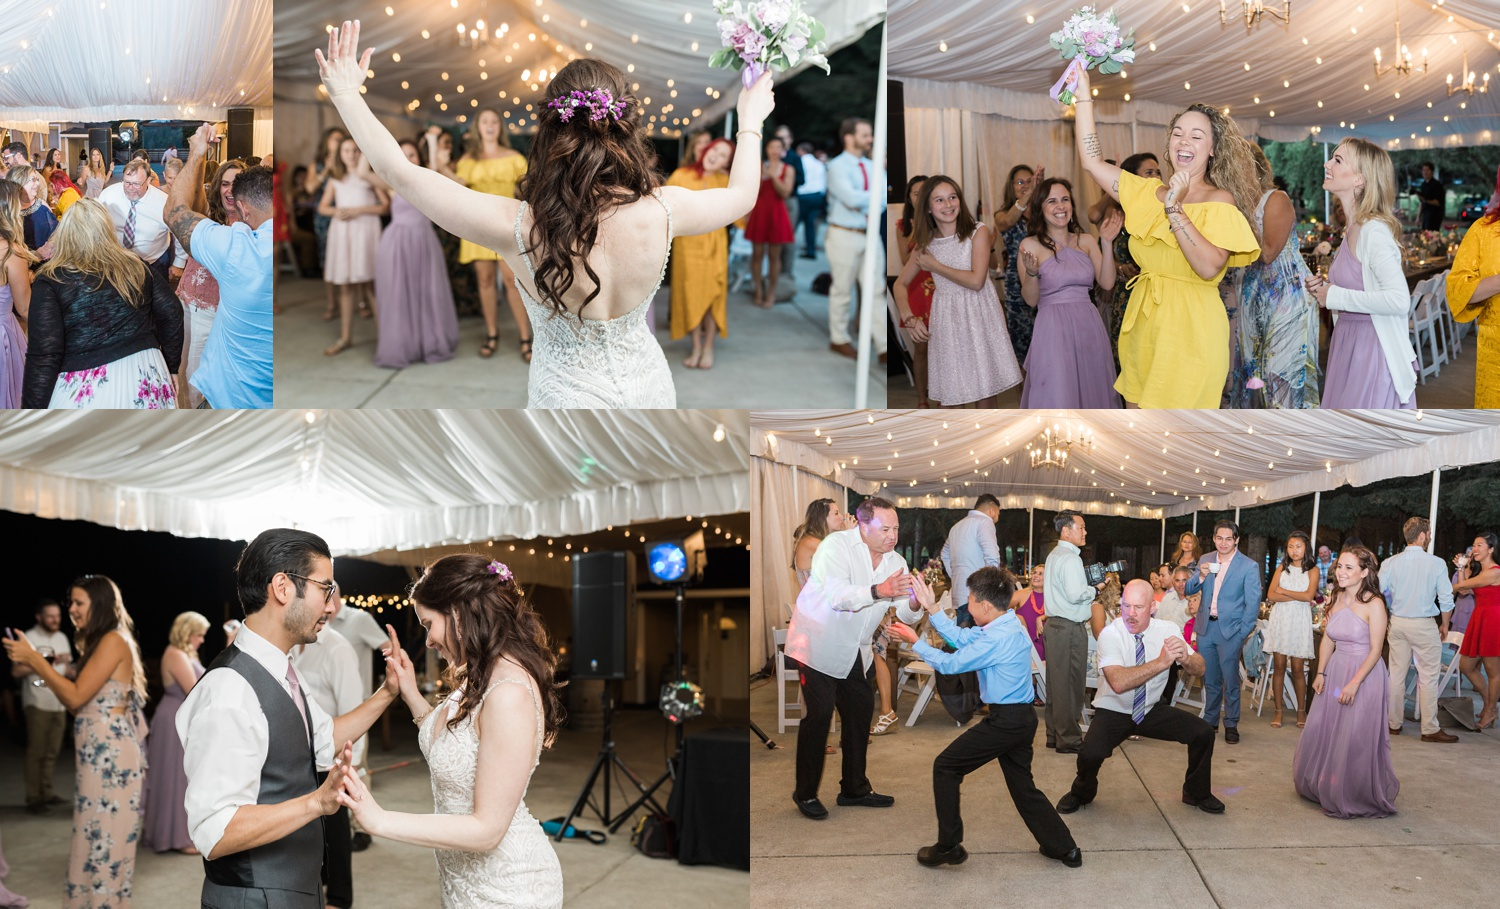 A bride, groom, and their guests dance during a wedding reception at Woodland Meadow Farms in Snohomish, a wedding venue near Seattle, WA. | Joanna Monger Photography | Seattle & Snohomish Photographer